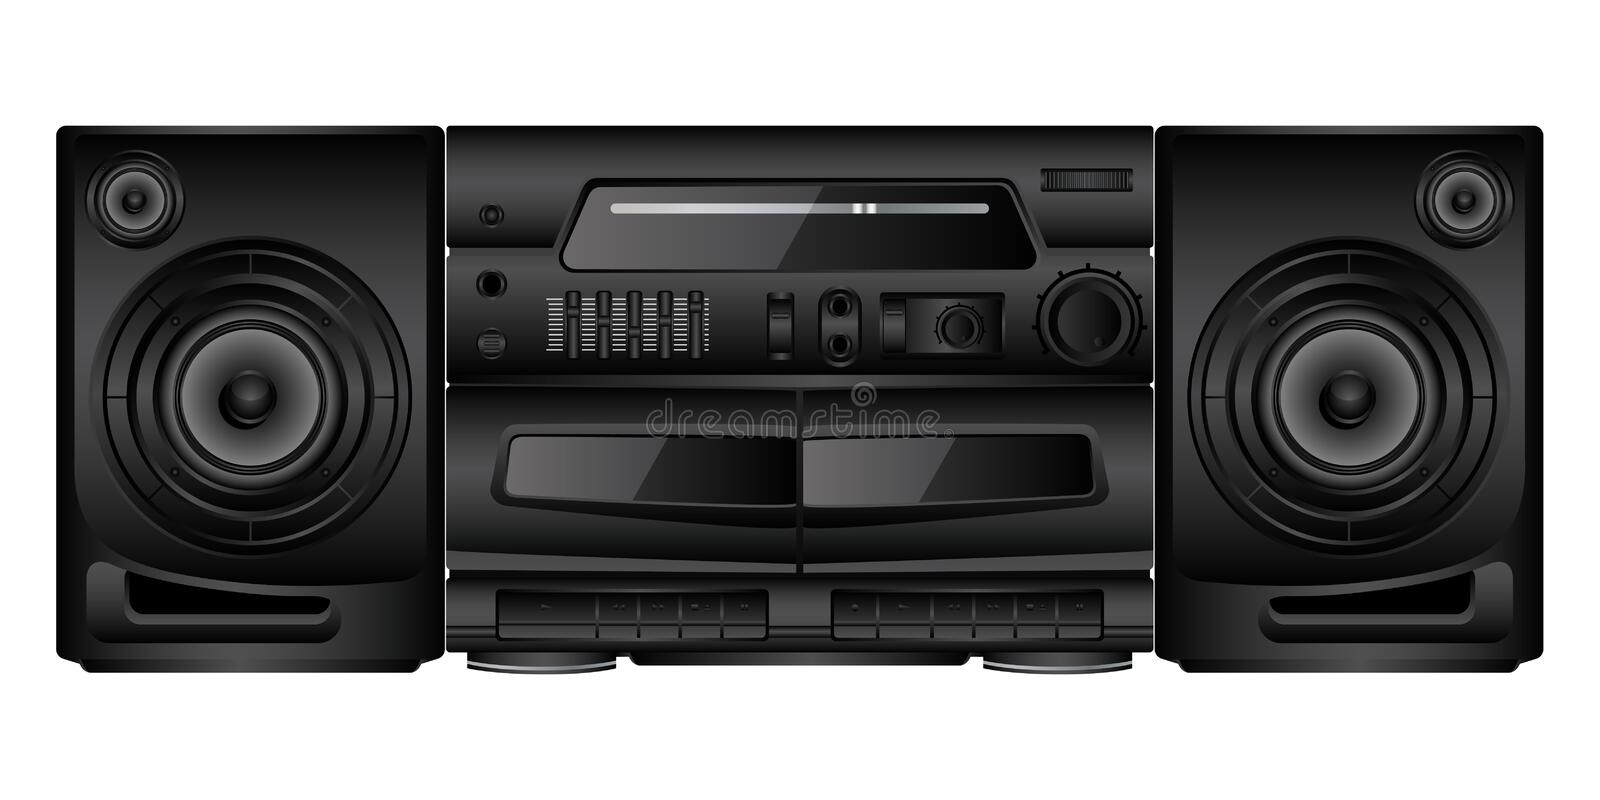 Boombox Royalty Free Stock Photography